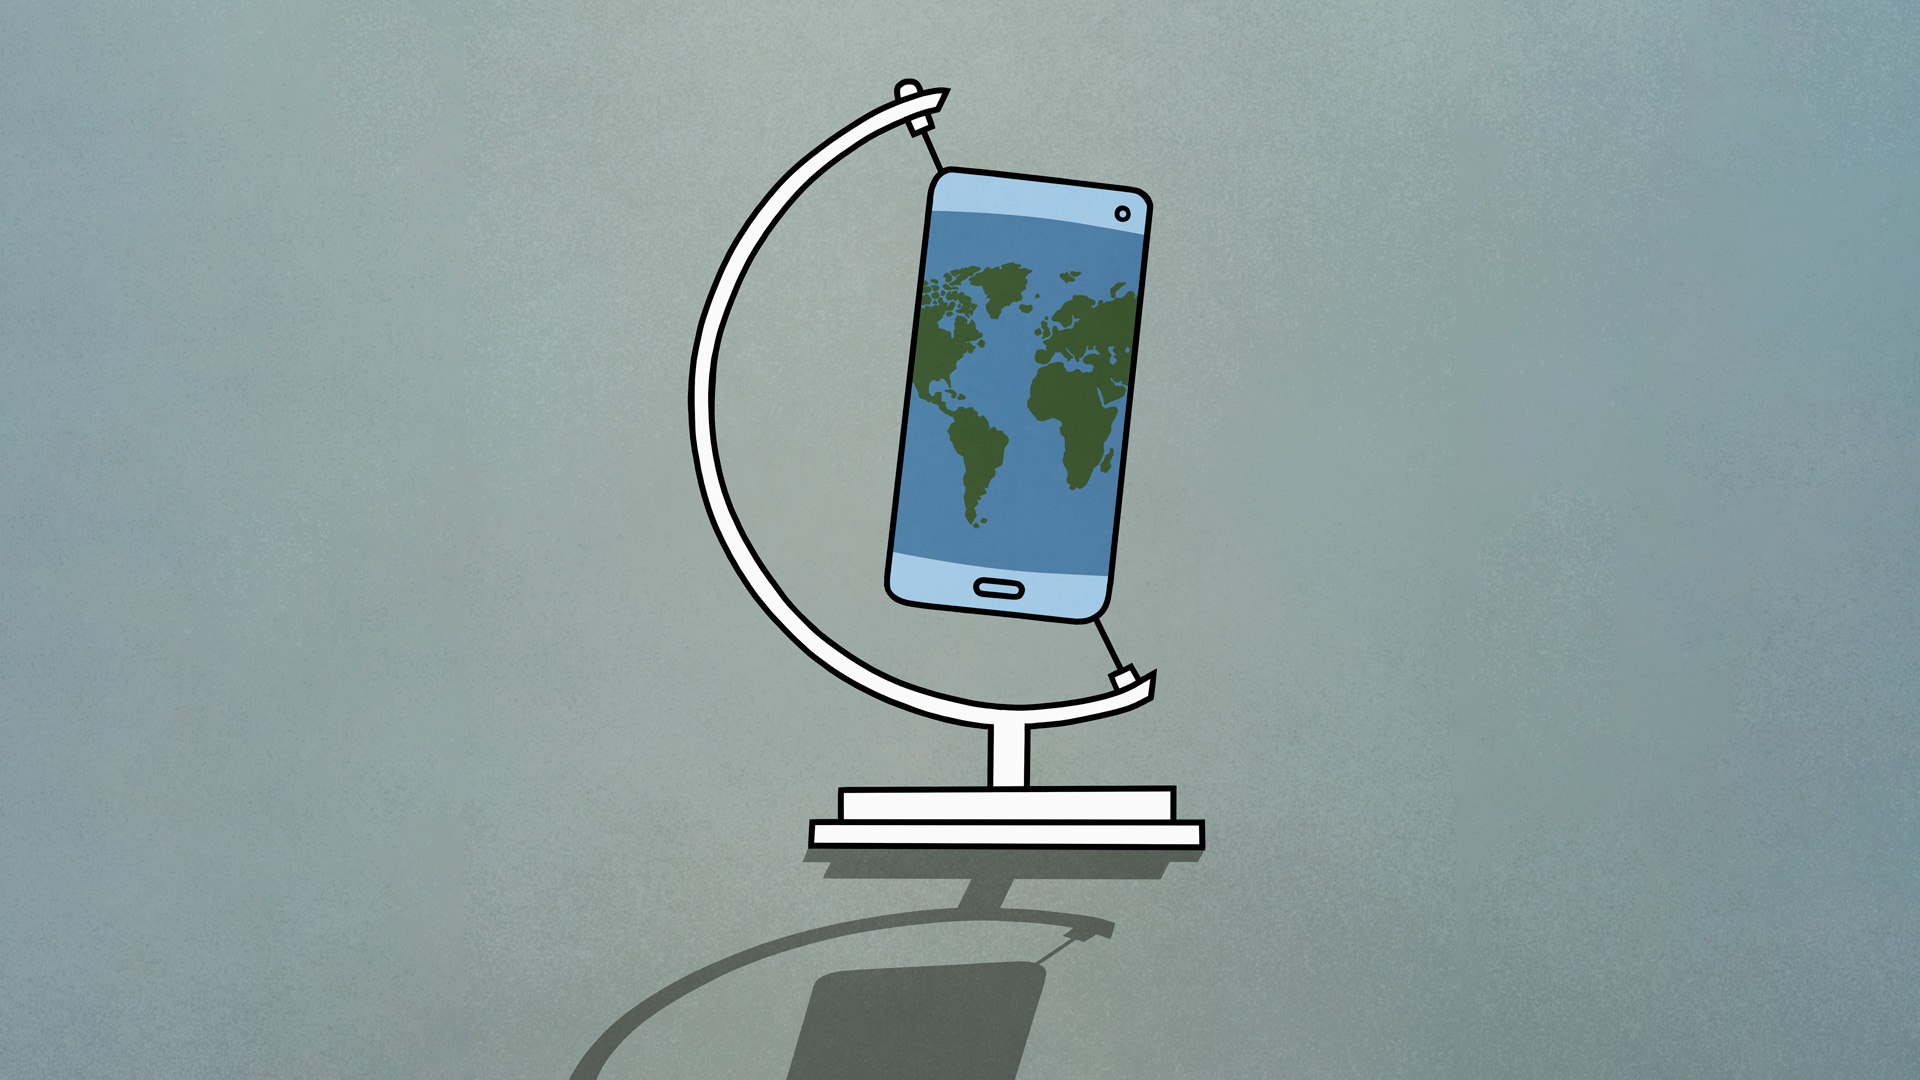 mobile phone standing